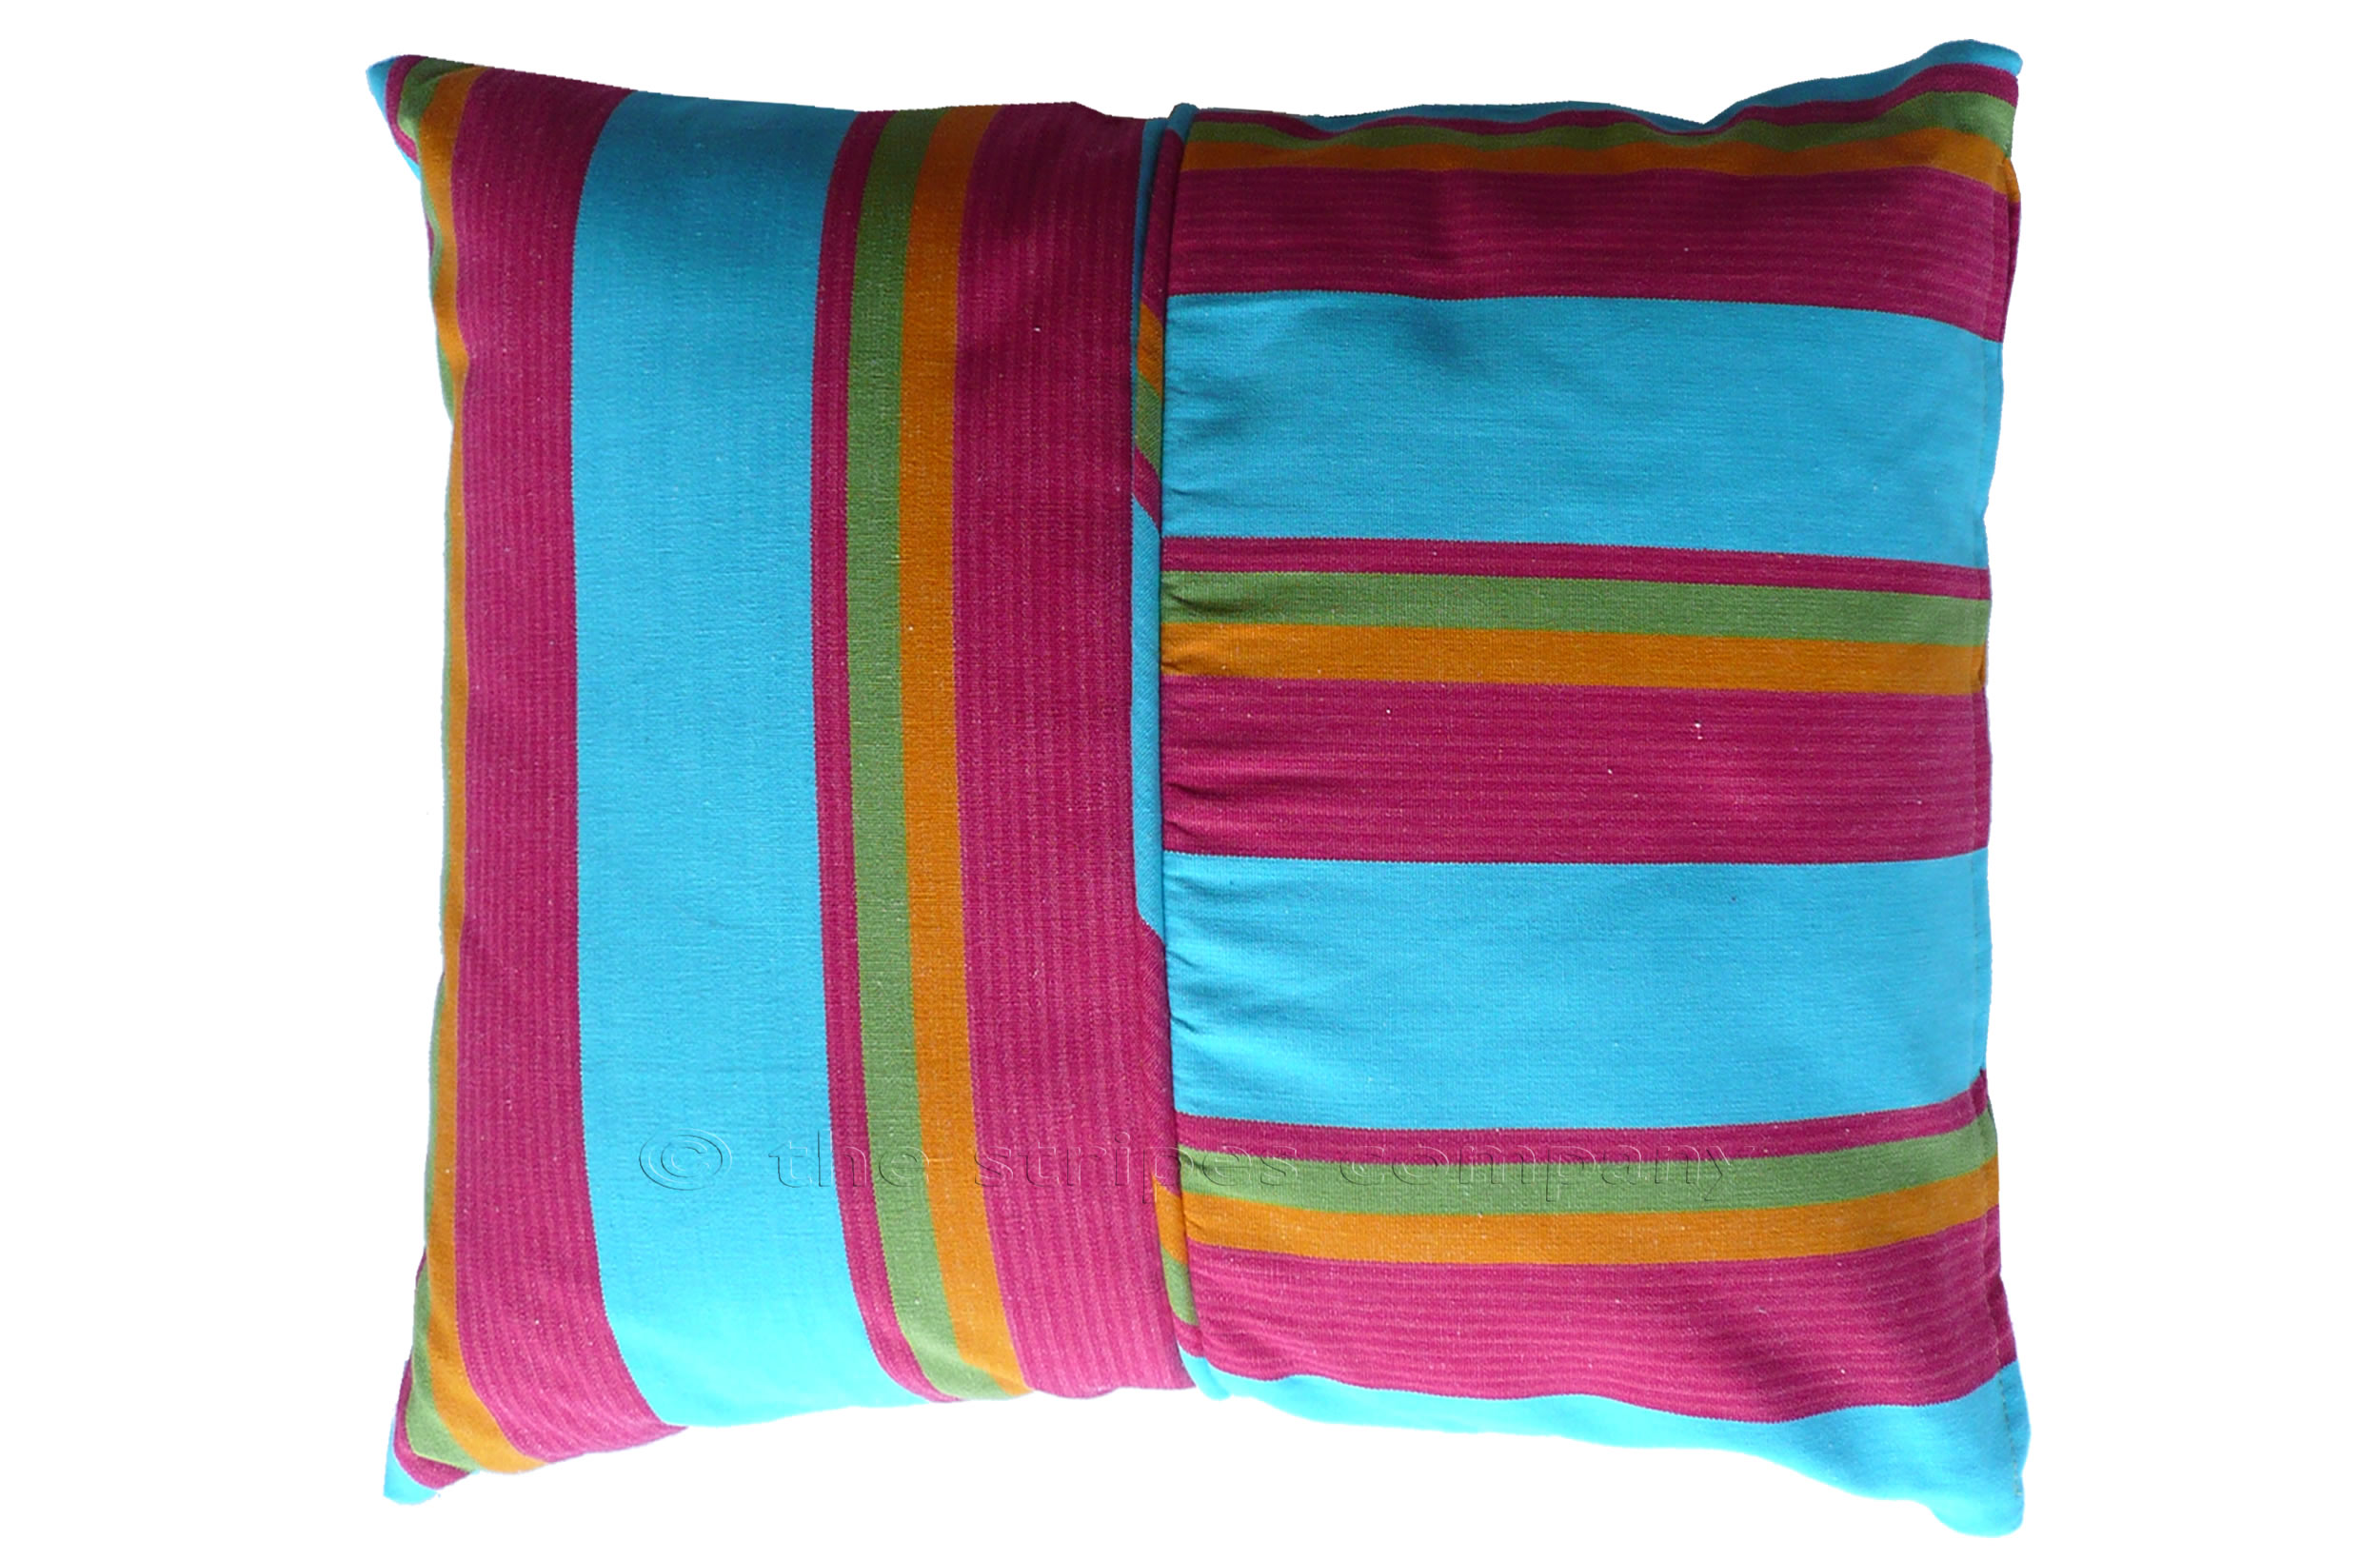 turquoise, pinky red, yellow - Striped Piped Cushions | Square Piped Cushions